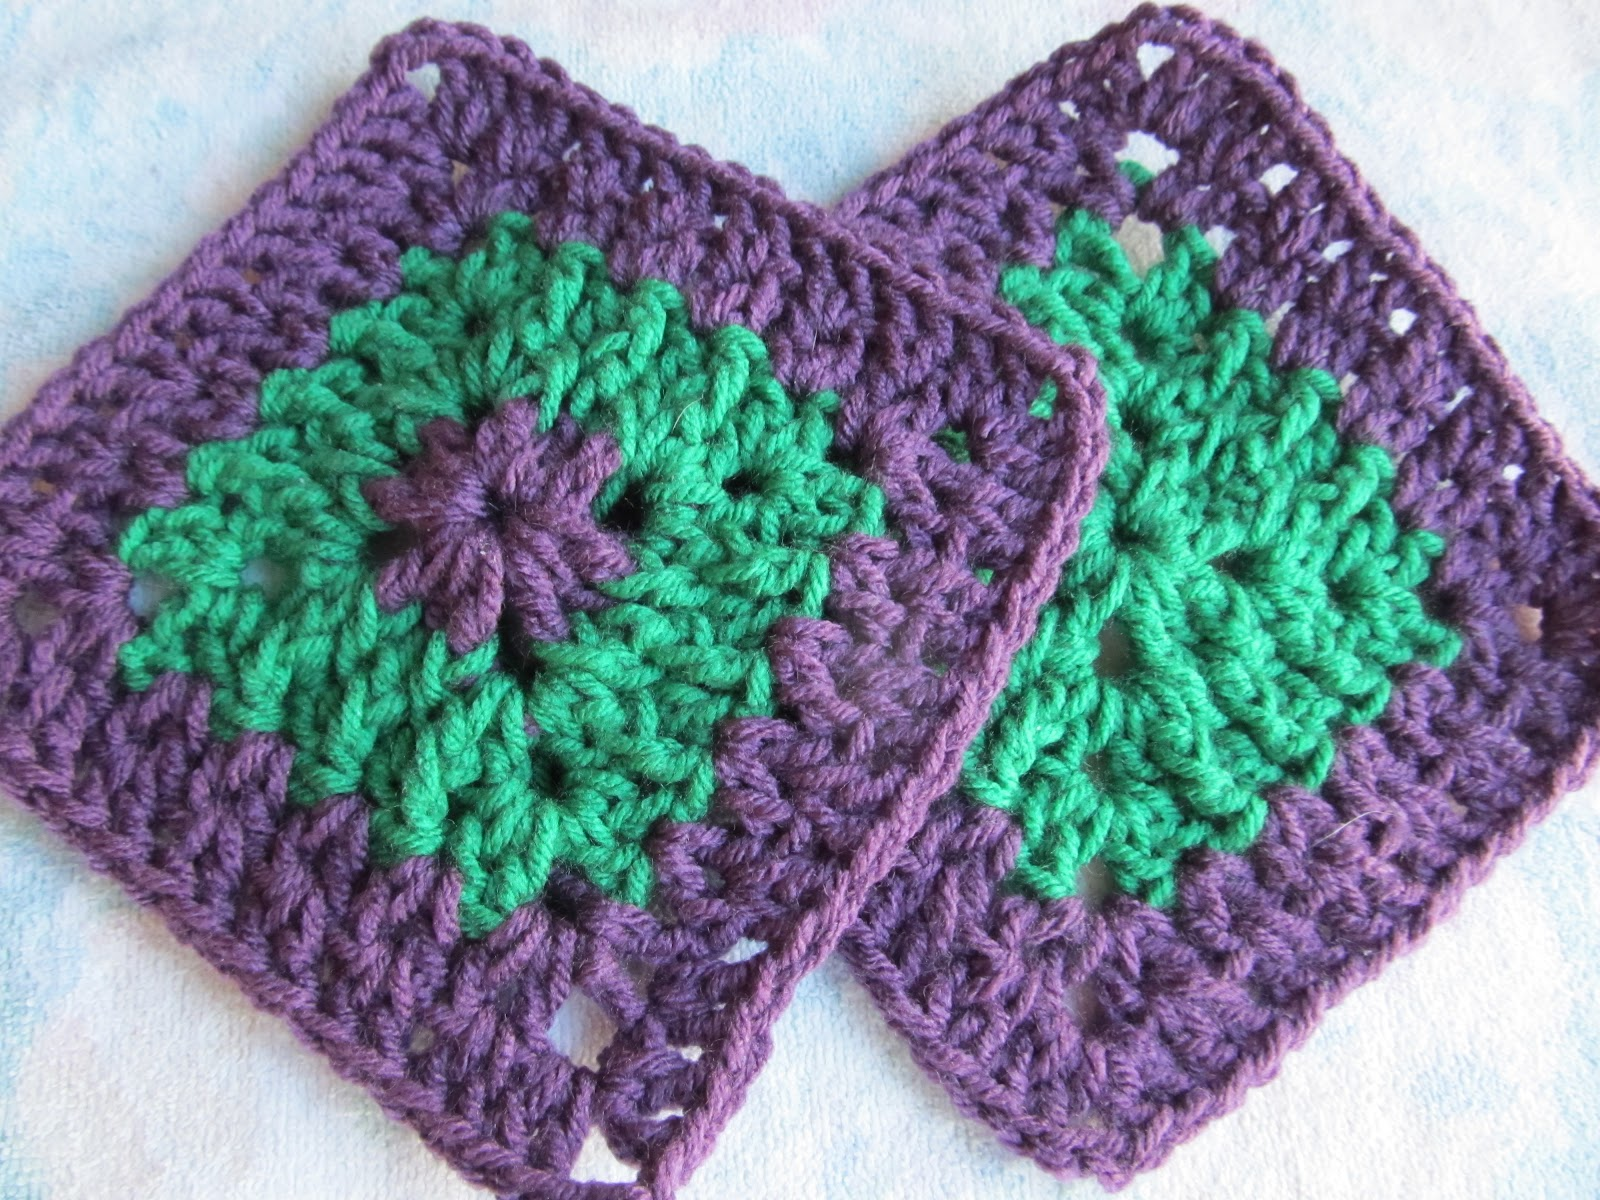 Cool Crochet Patterns : ... Crochet and Knit: SmoothFox Cool 2B Square - Free Crochet Pattern